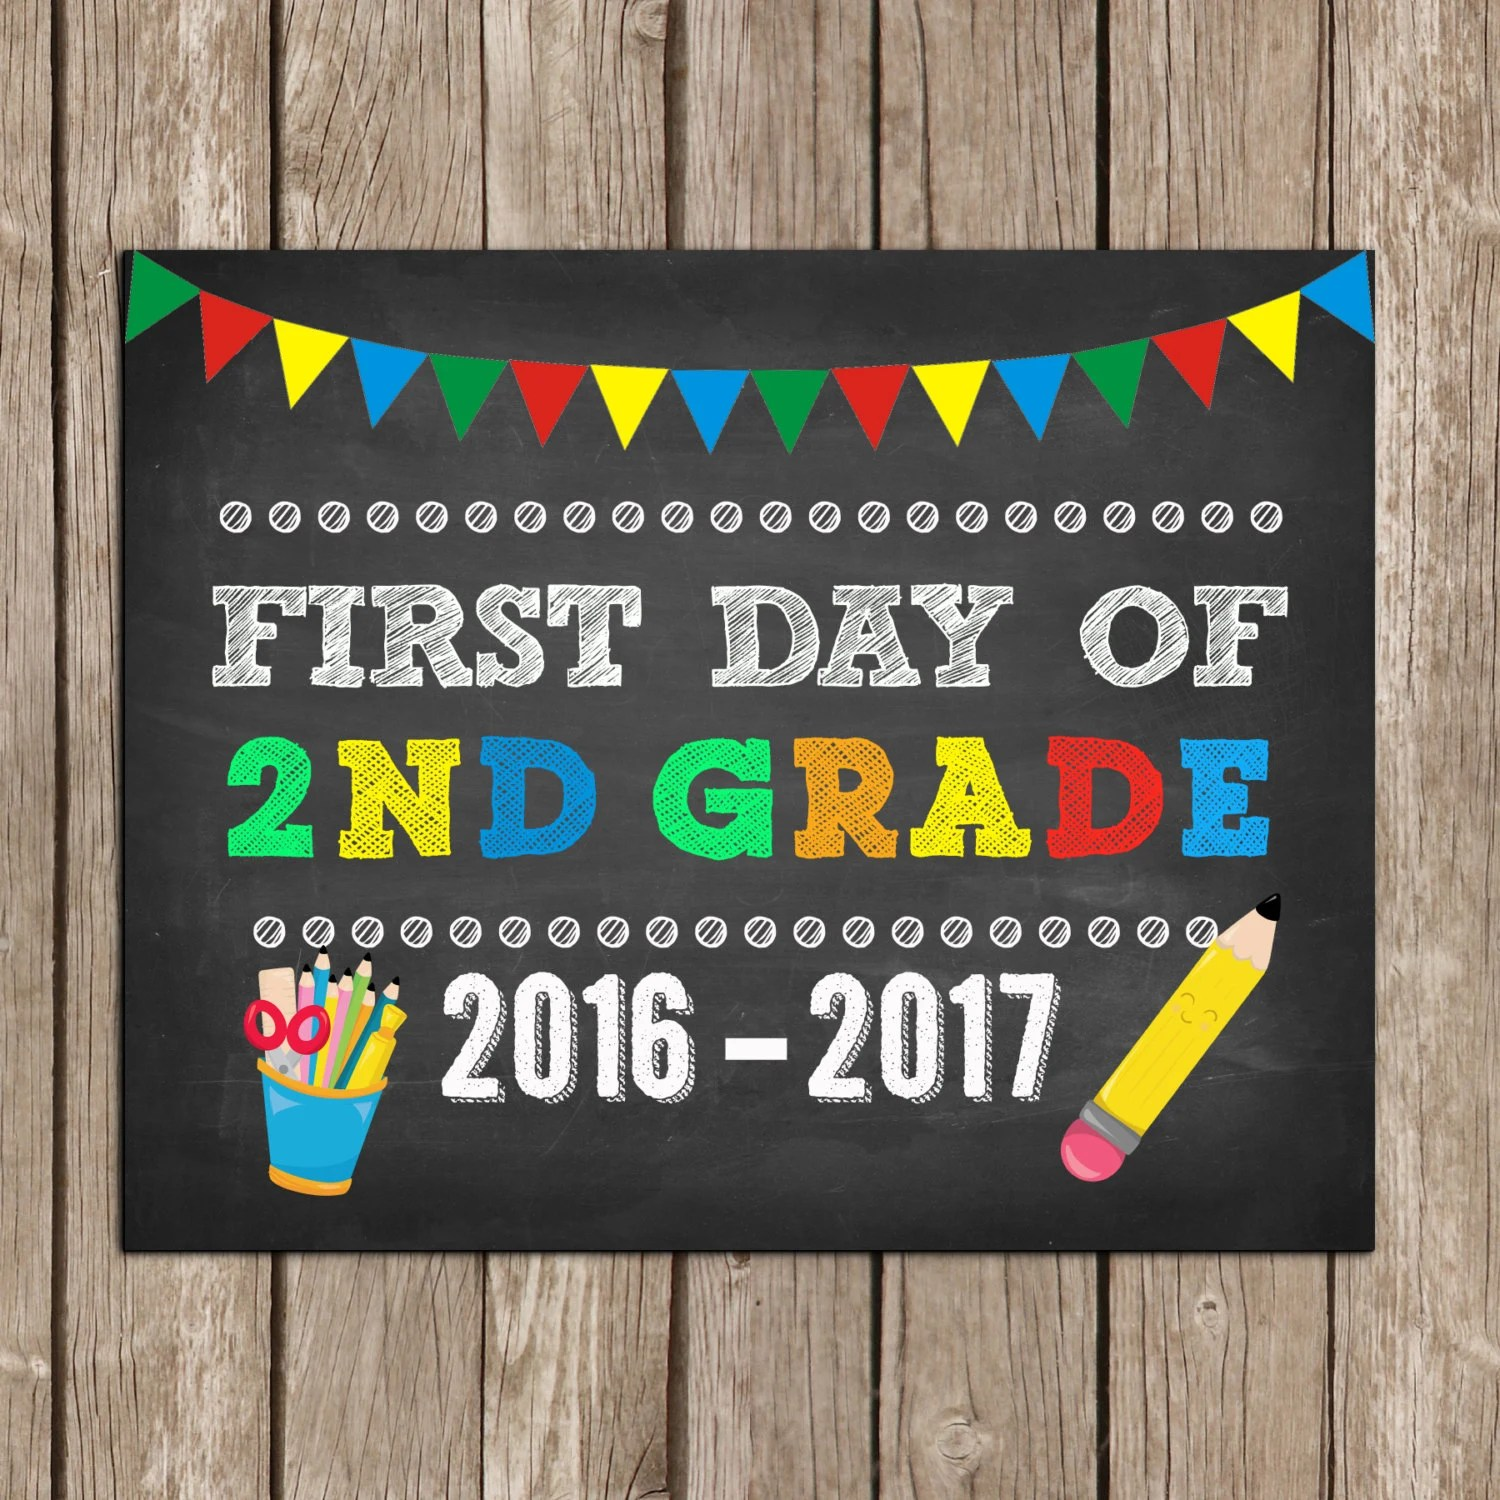 First Day And Last Day Of 2nd Grade Second By Thelovelydesigns